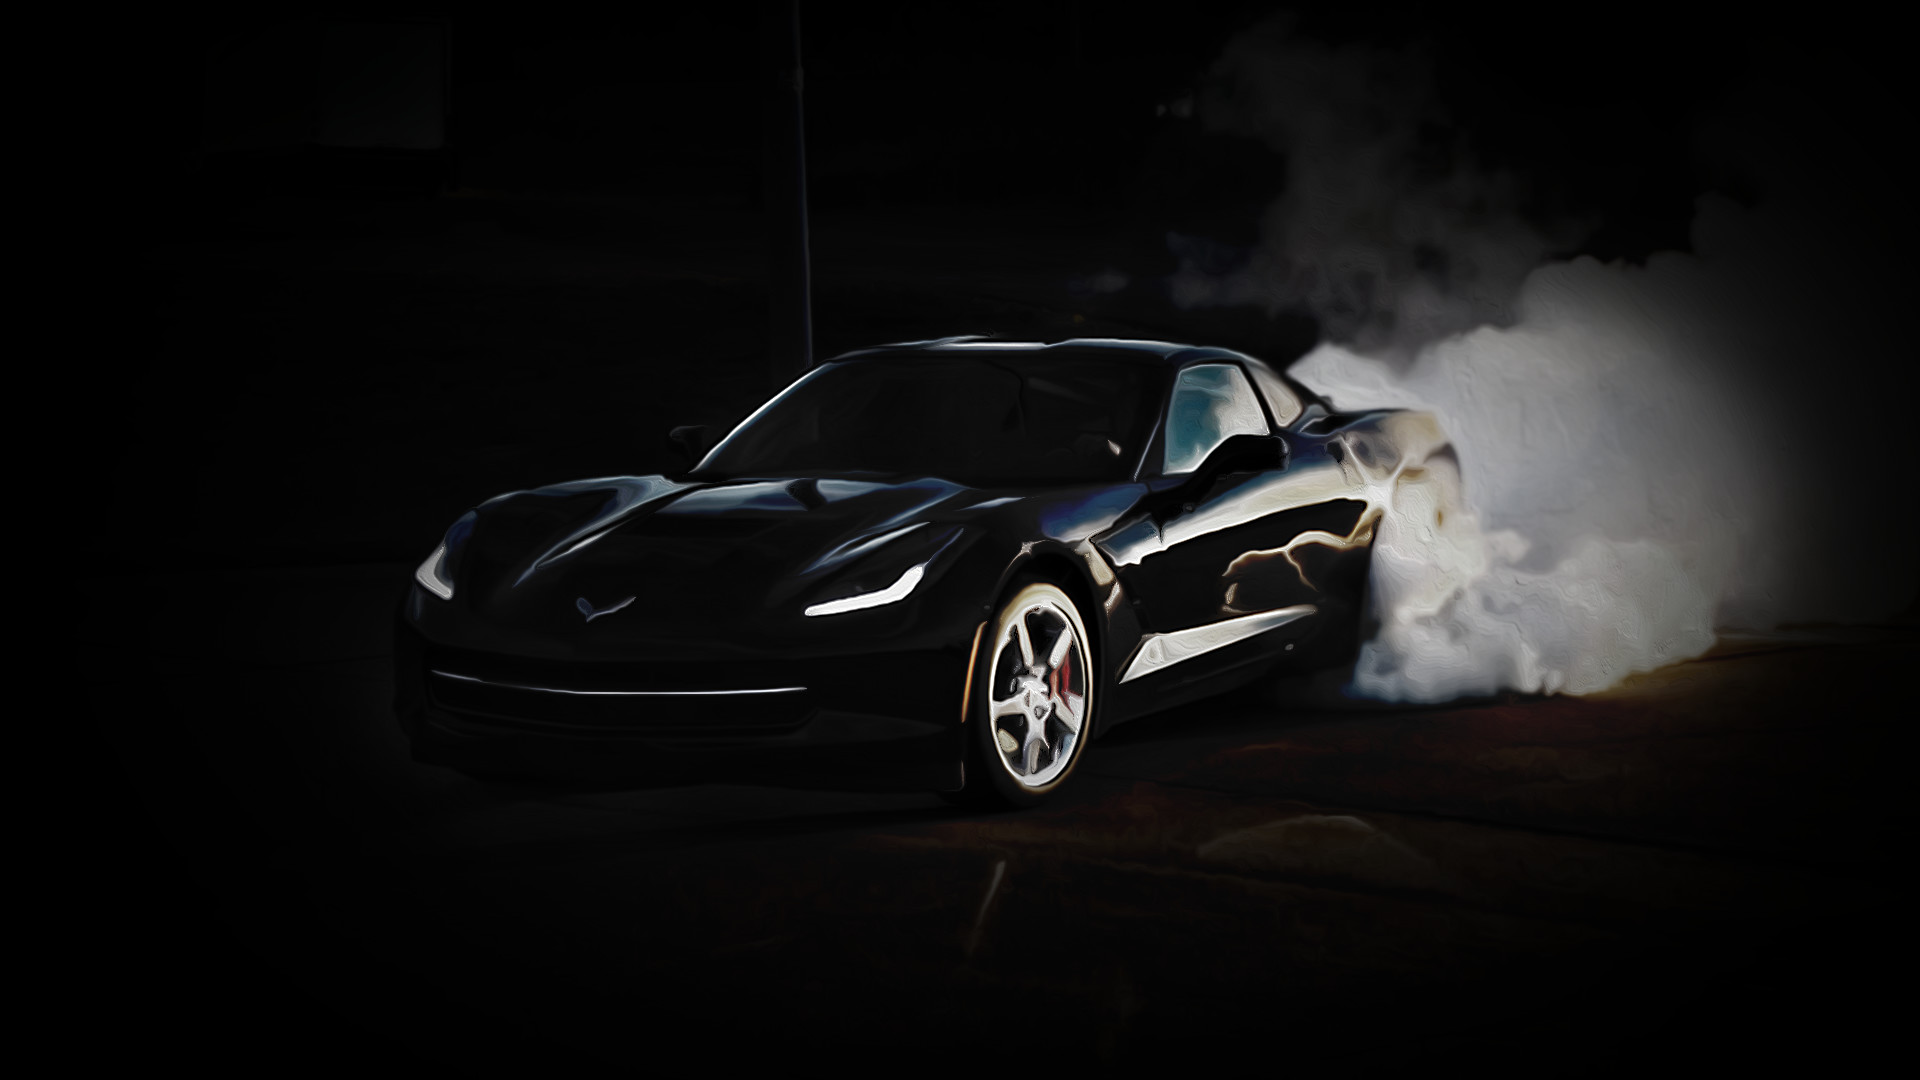 1920x1080 Corvette C7 Wallpaper by MaritimeCanuck Corvette C7 Wallpaper by  MaritimeCanuck